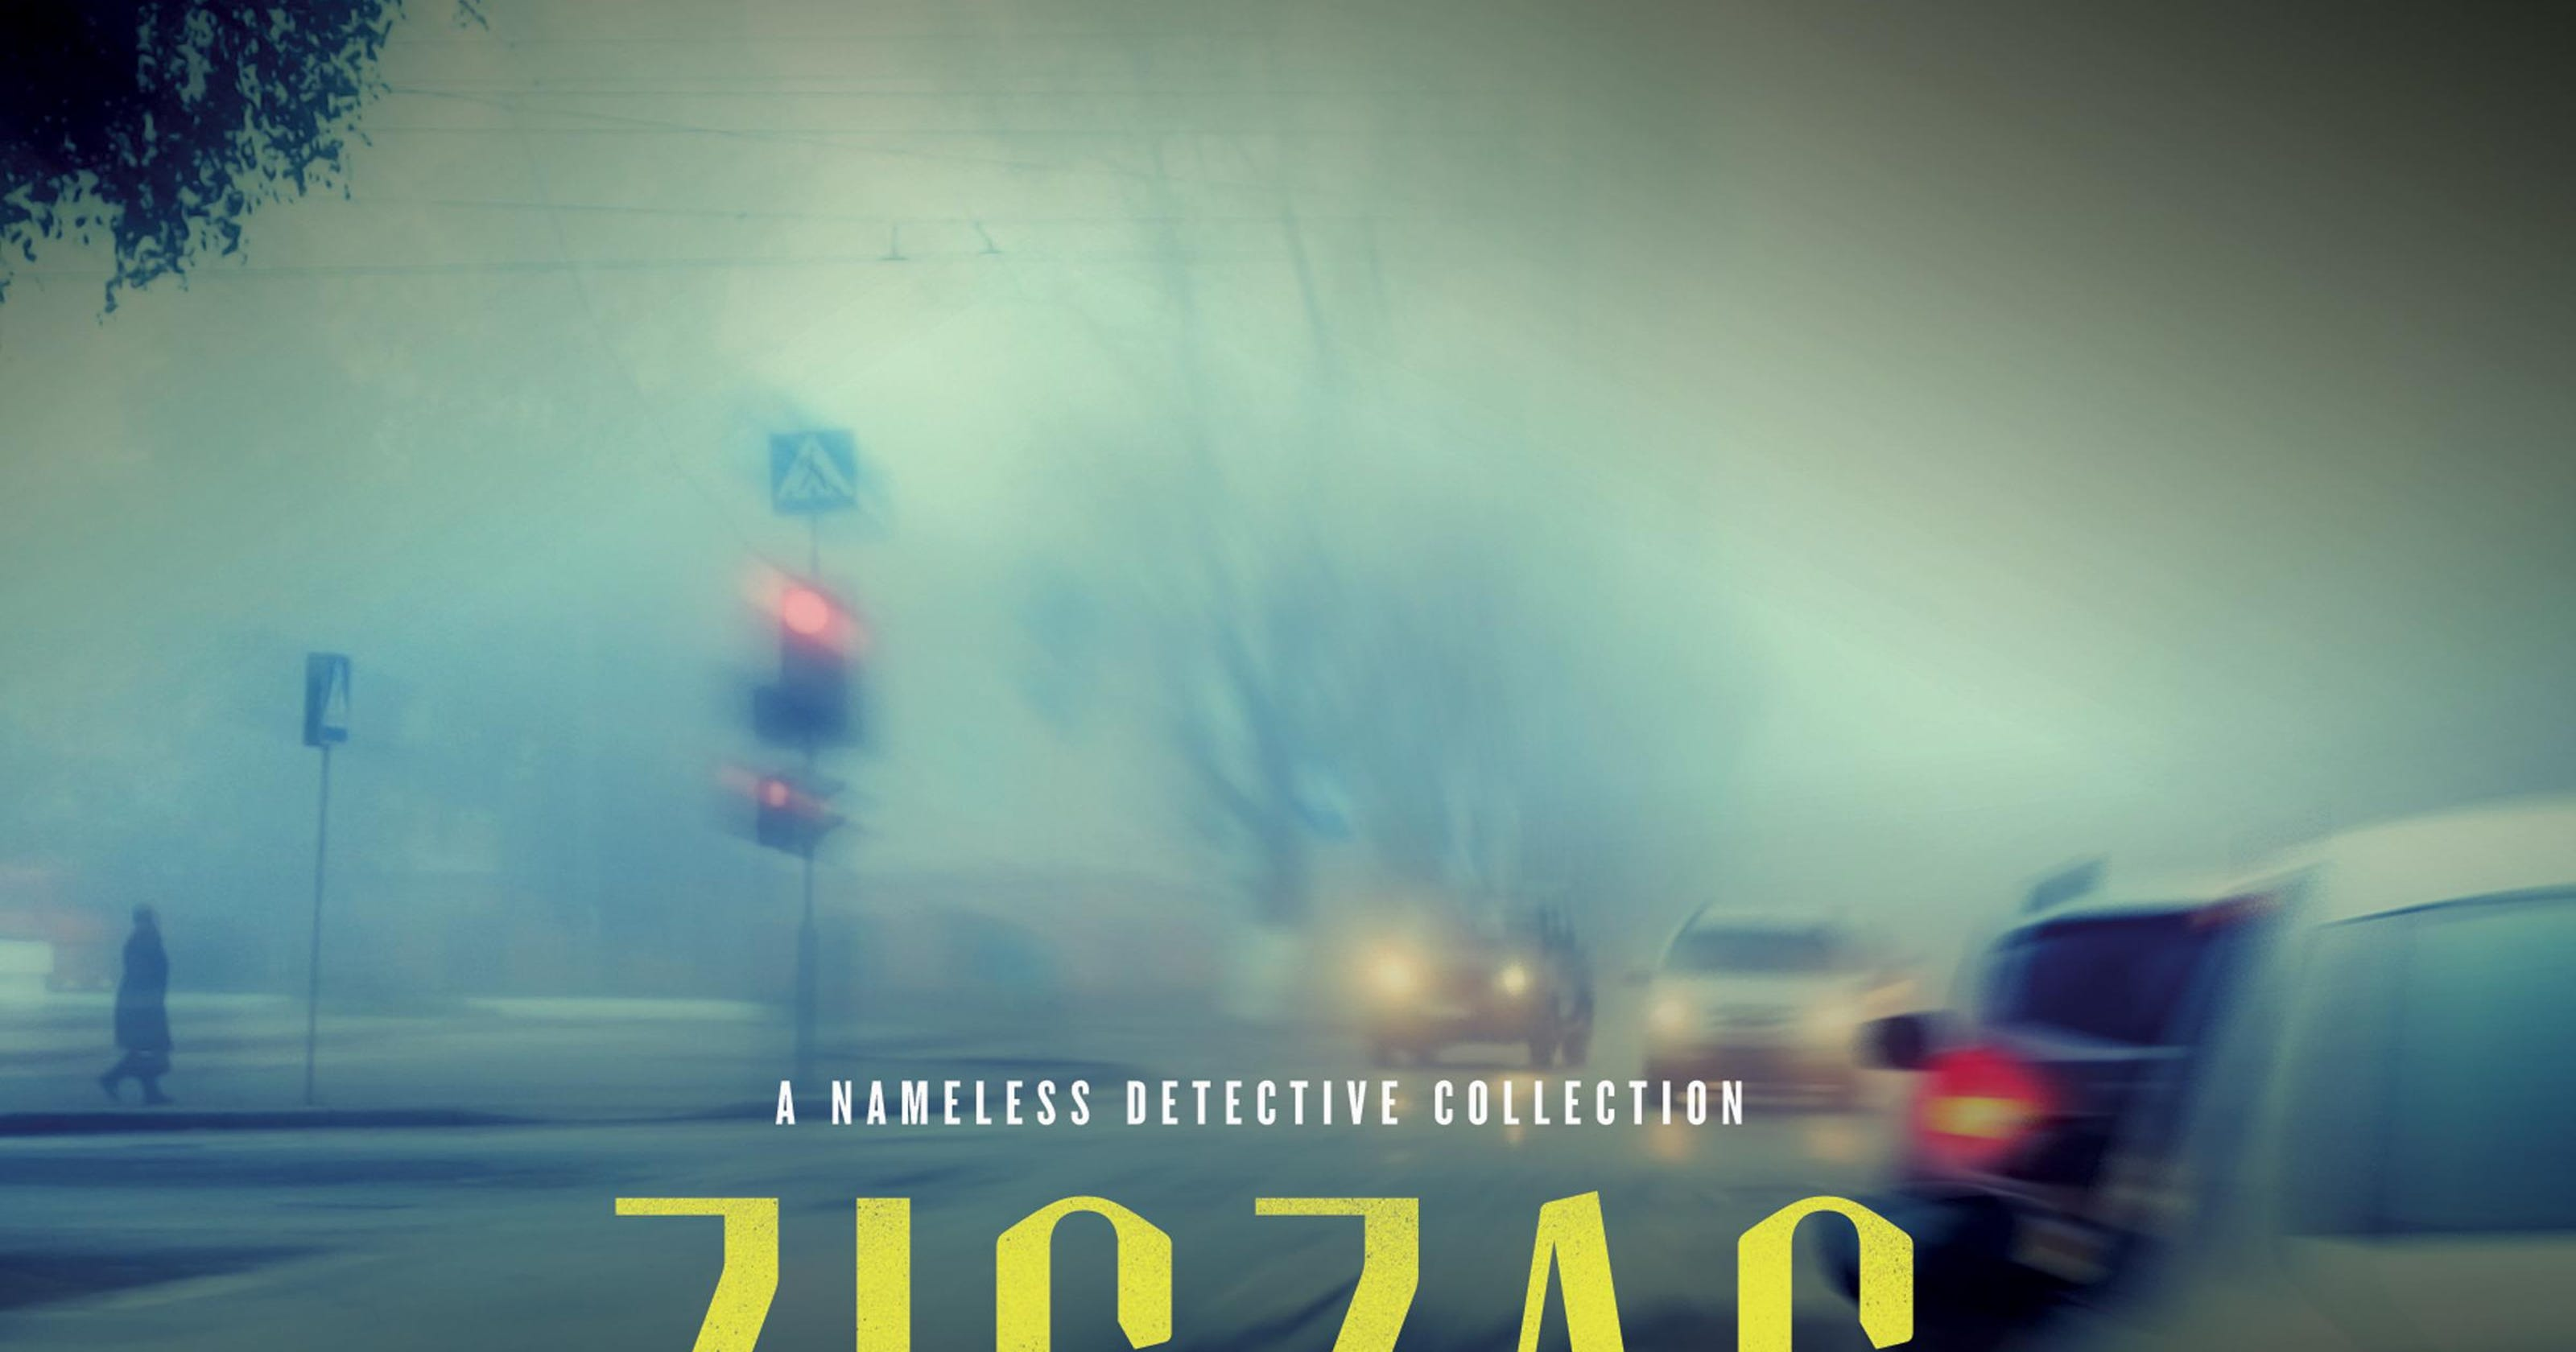 Pronzini's 'Zigzag' shows why he is grand master mystery writer